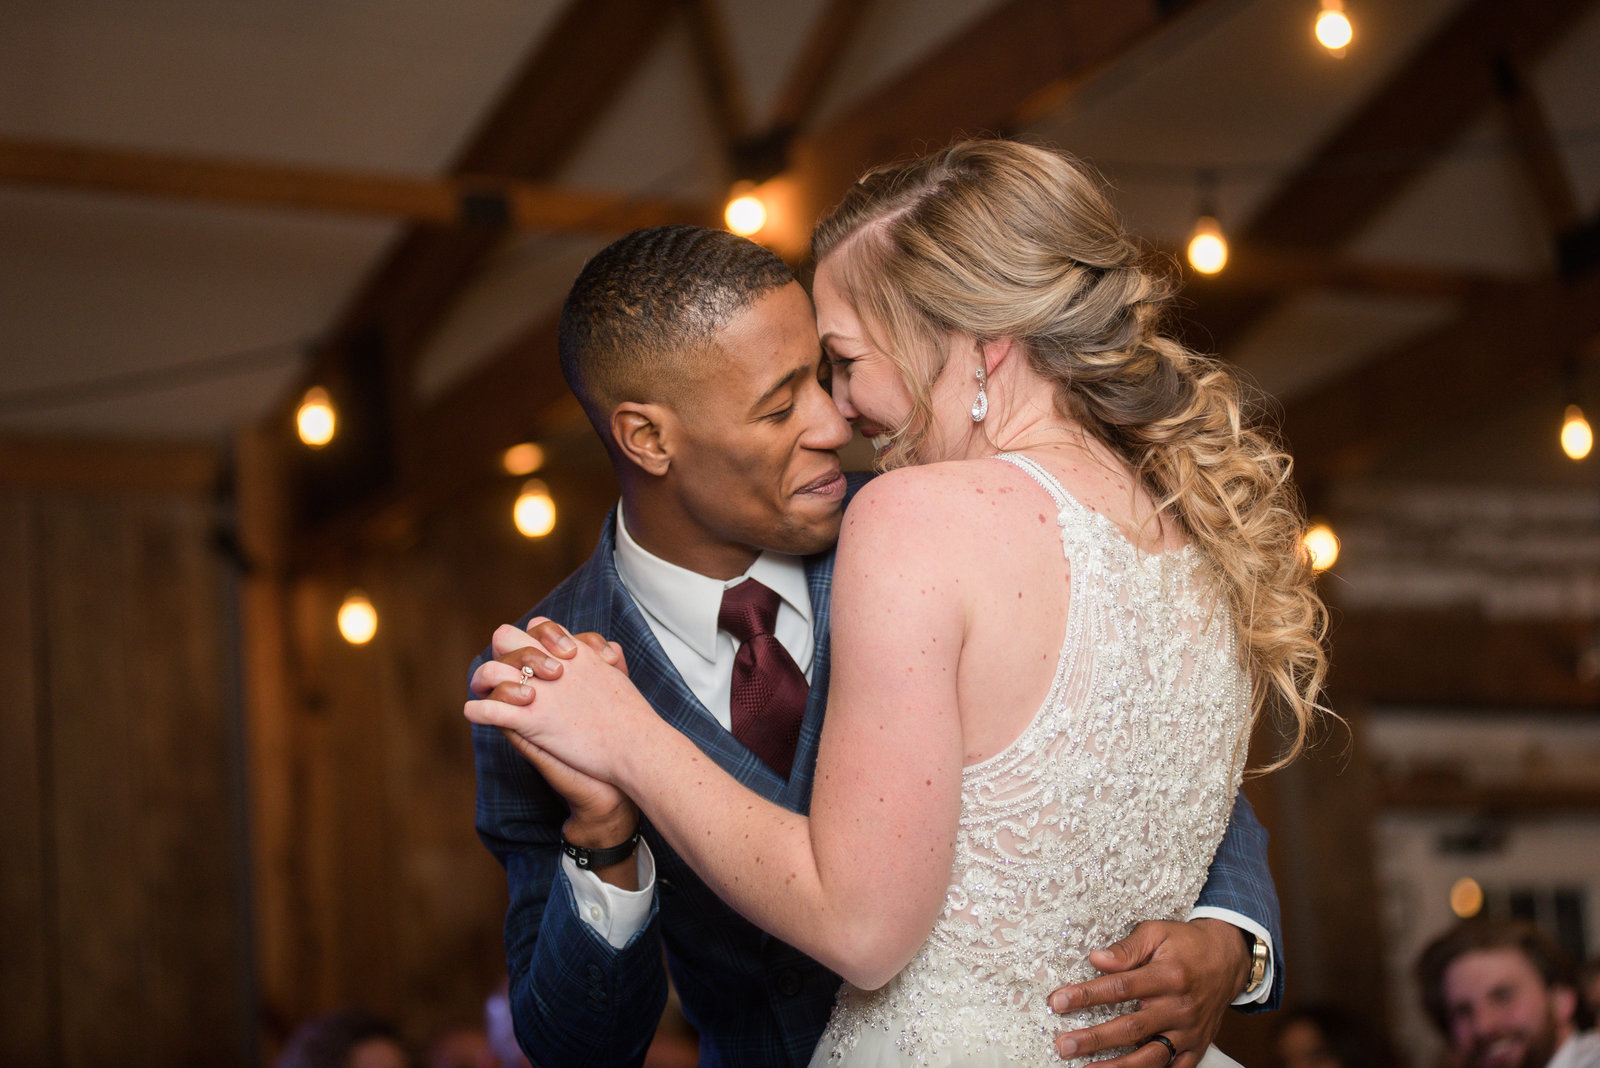 groom dancing with bride at wedding reception at vineyard estate at new kent winery by virginia wedding photographer